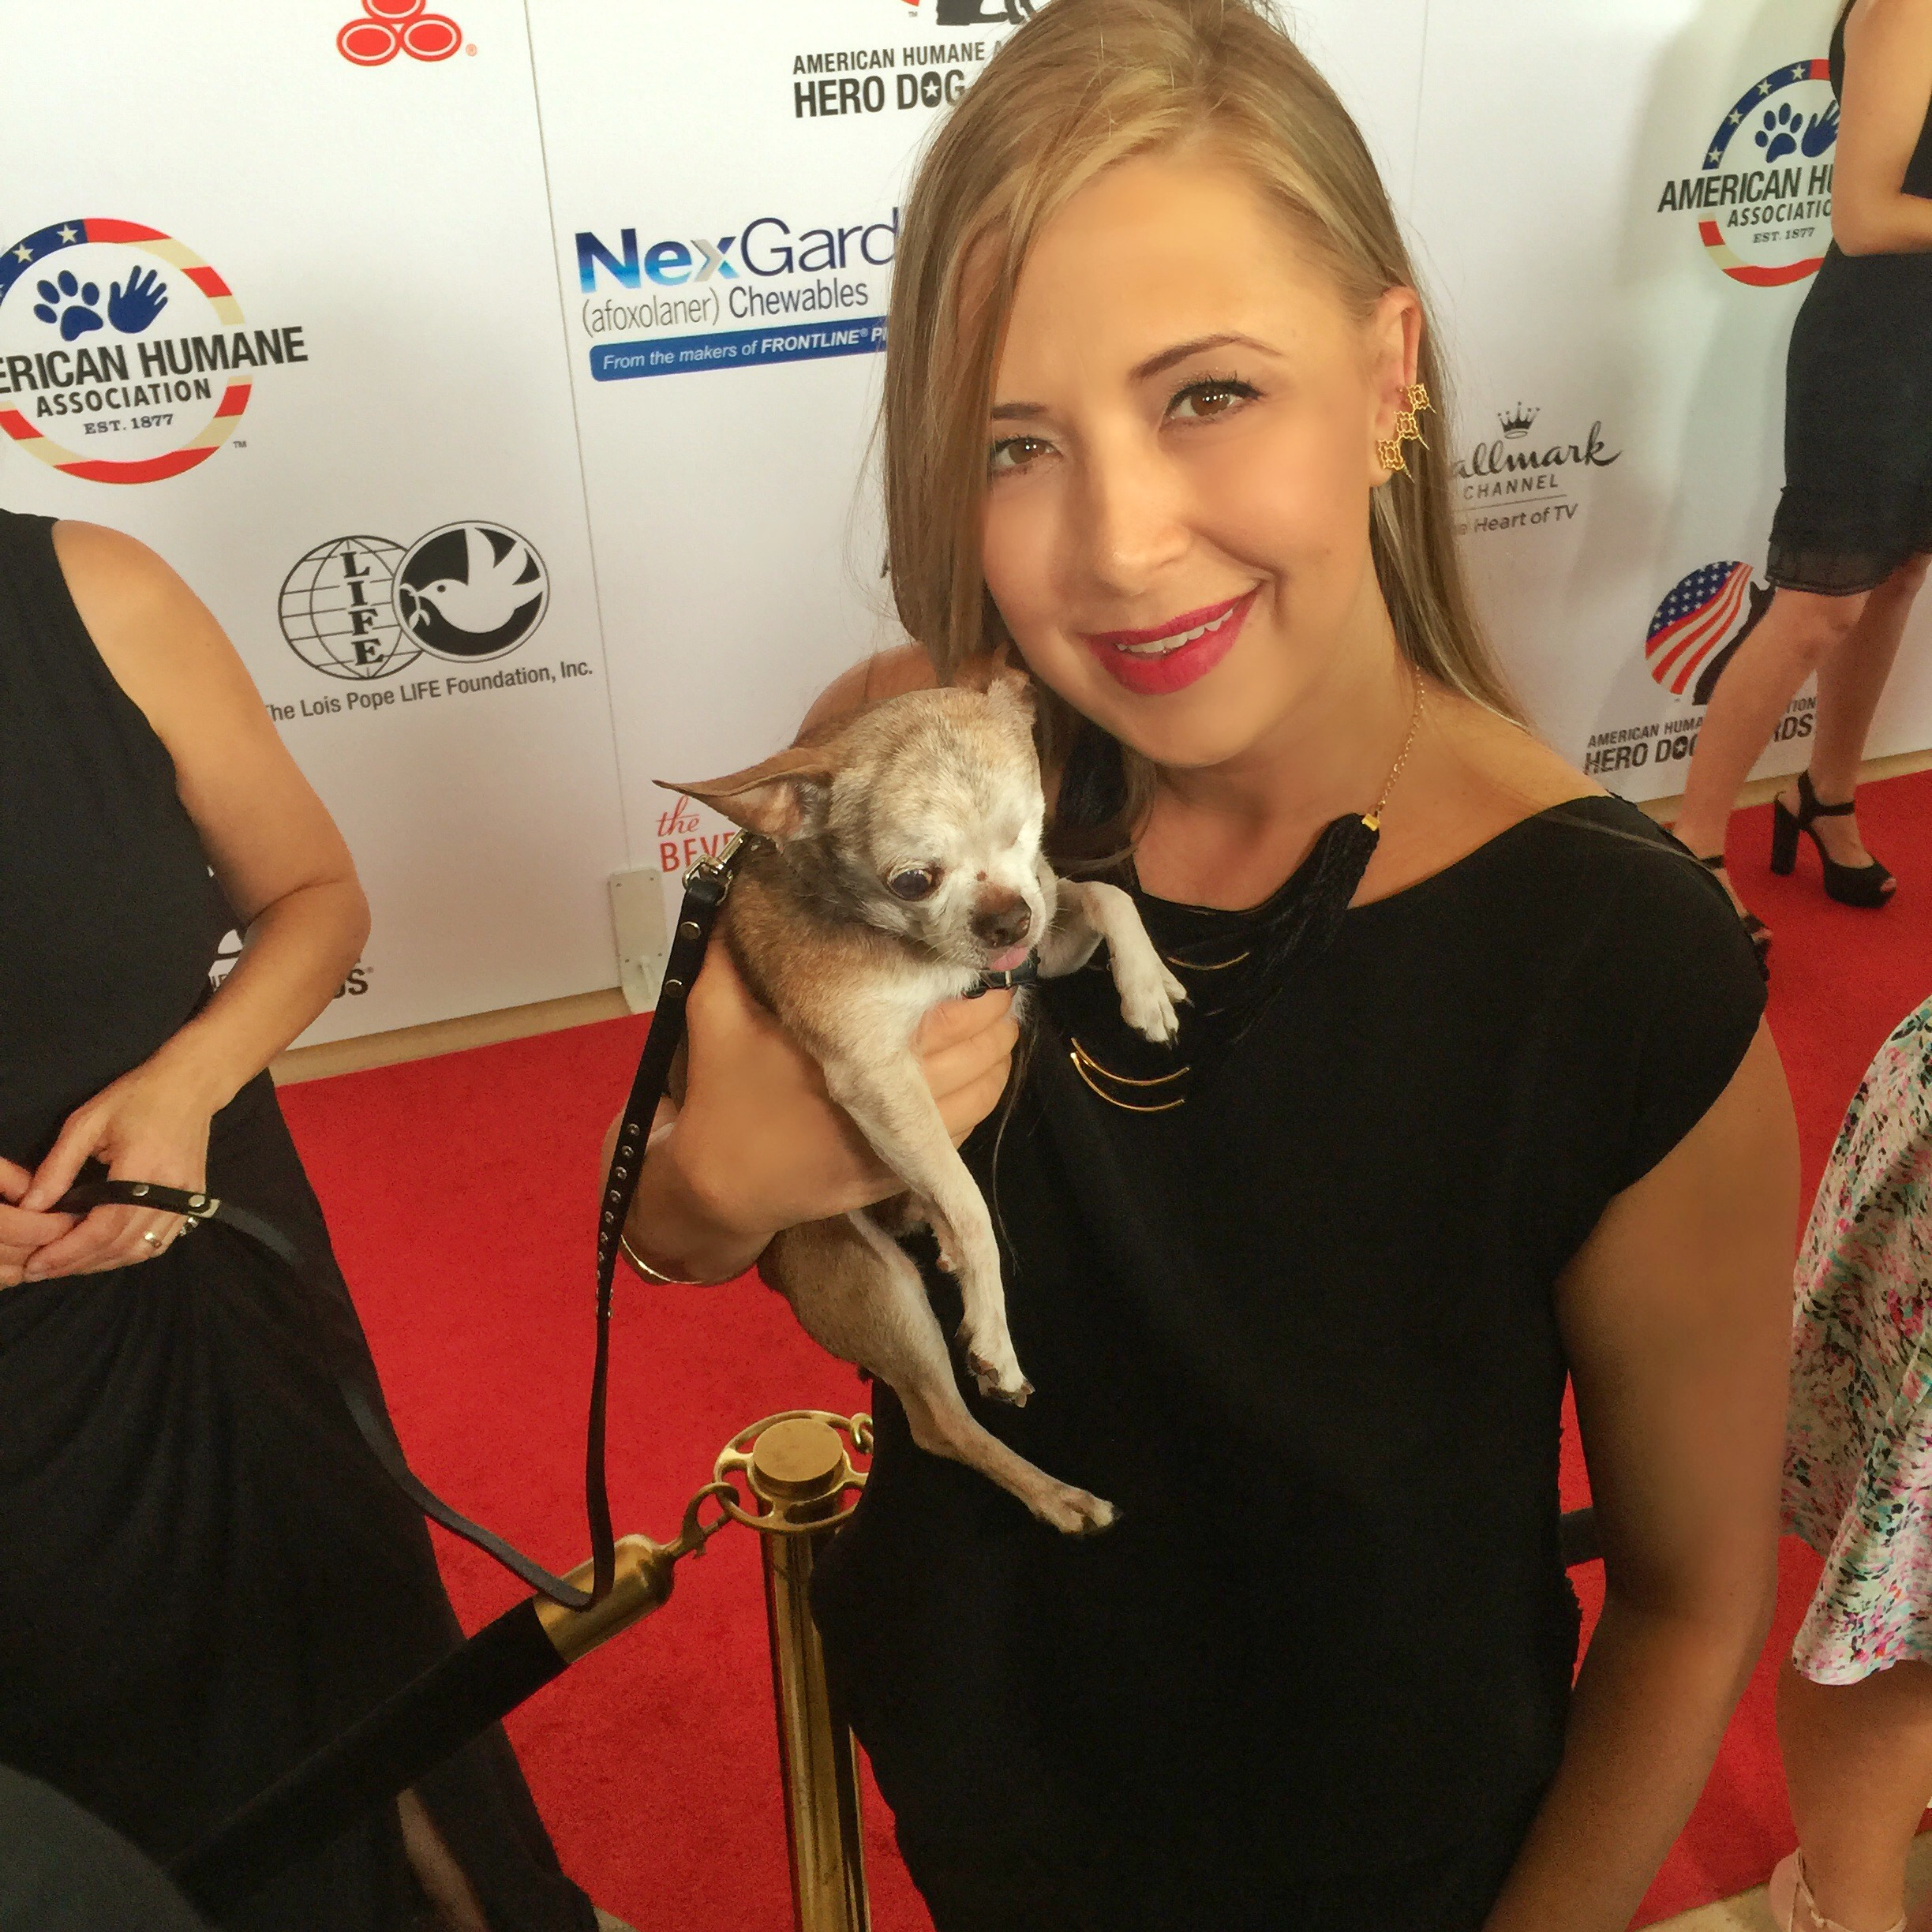 Hanging with American Hero Dog 2015 winner and puppy mill survivor, Harley